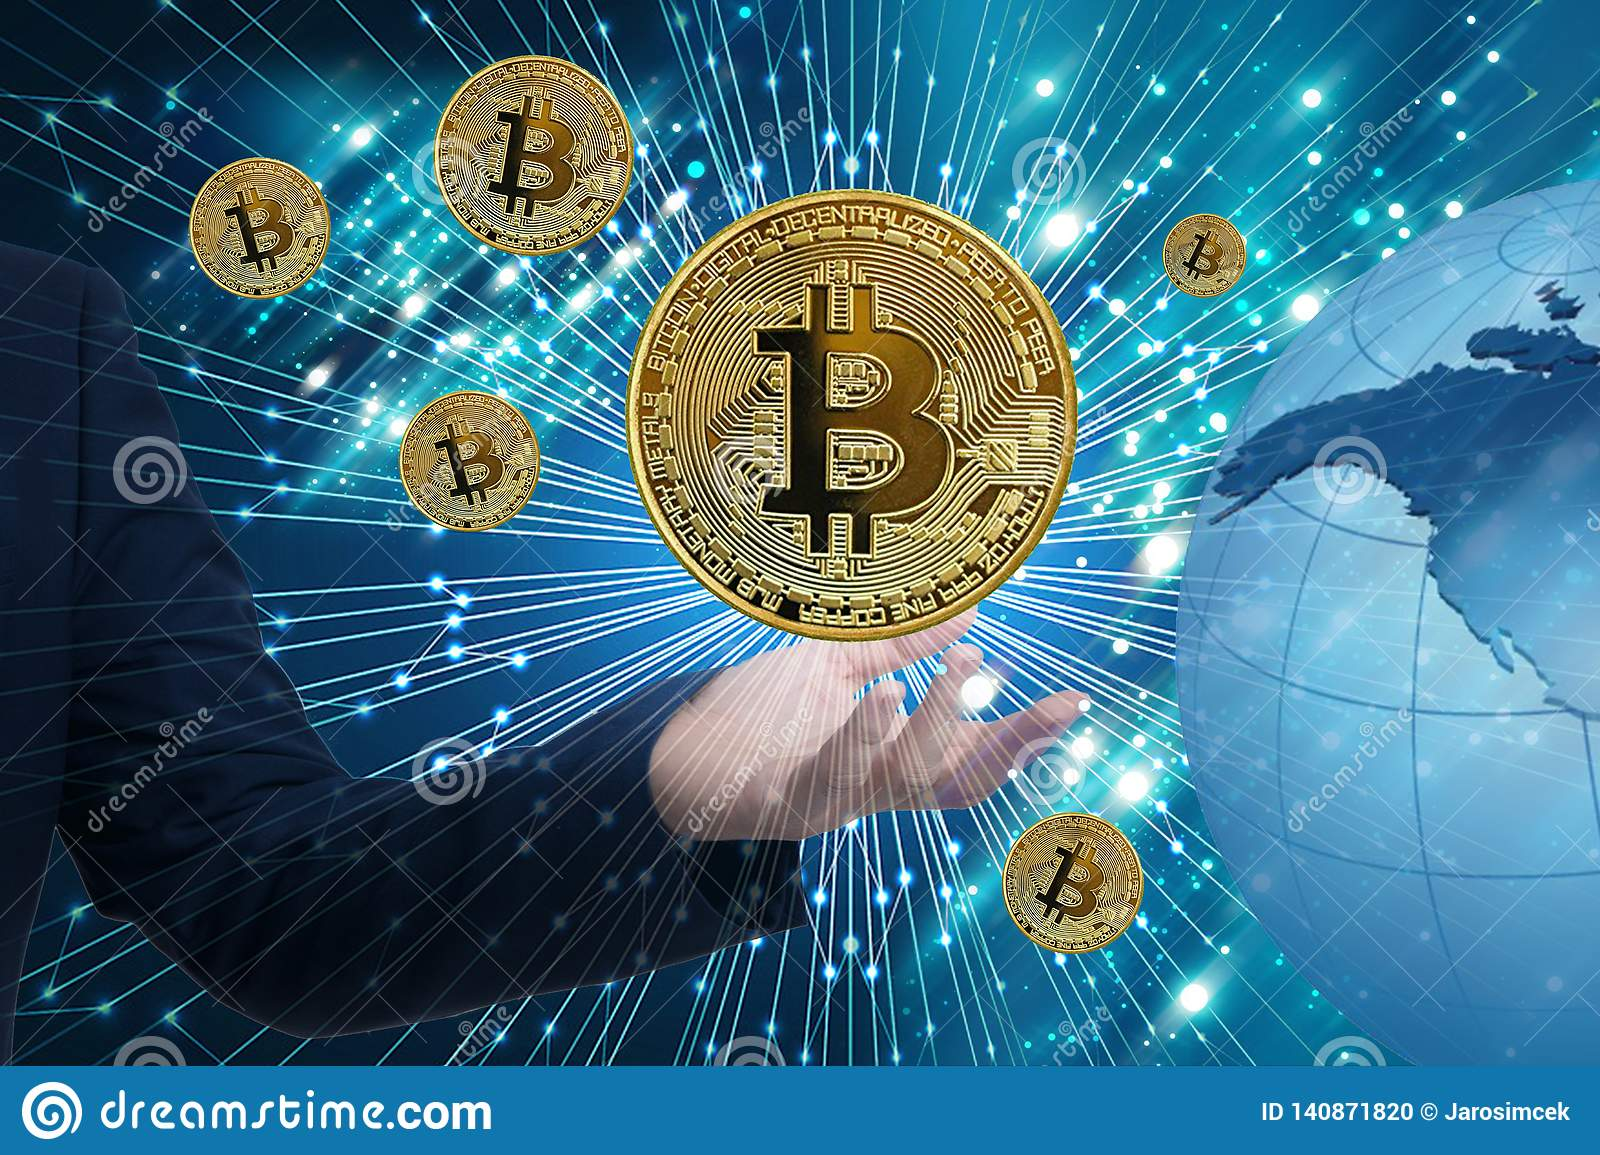 Bitcoin and cryptocurrency technologies back and lay meaning in betting what does ats